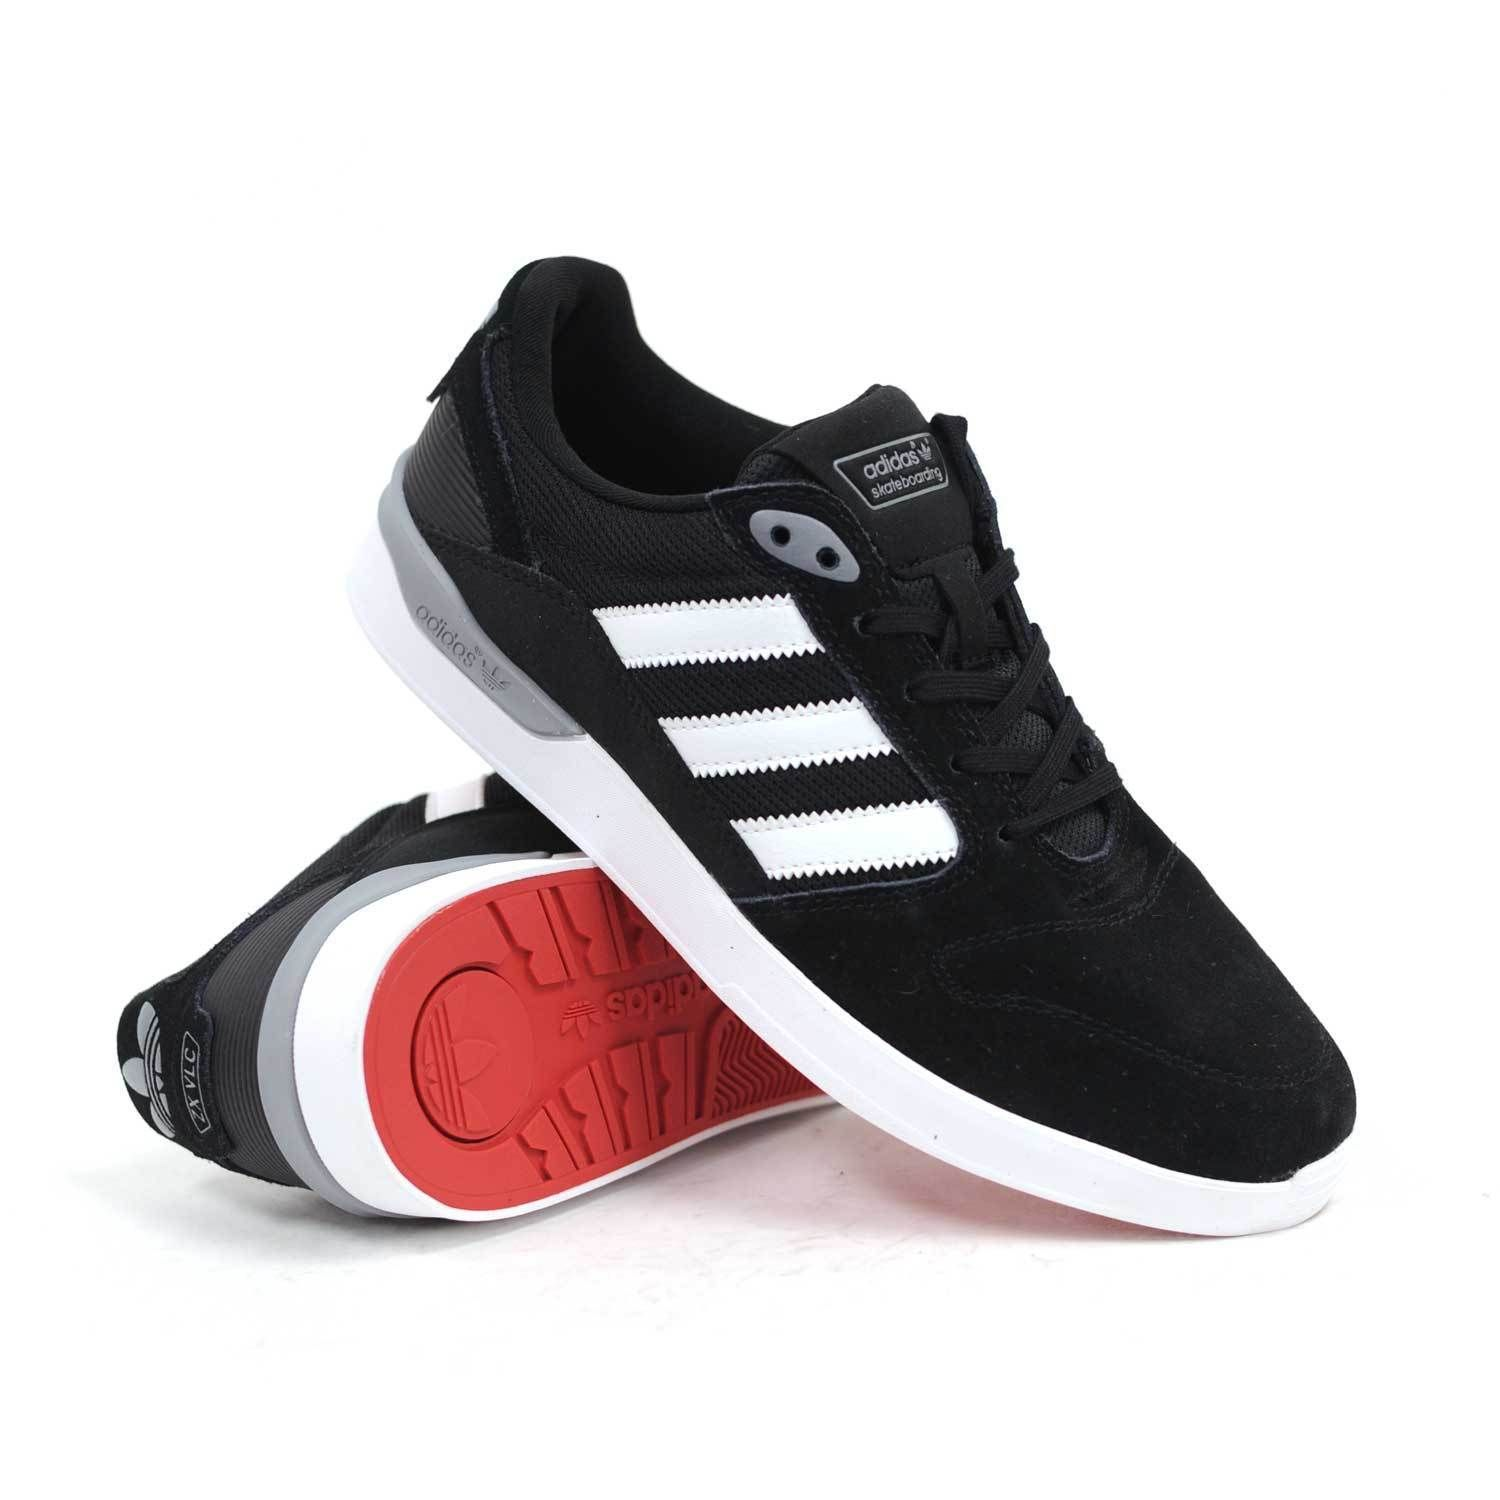 huge selection of 6ed45 5ea2b adidas ZX Vulc Skate shoes Black   C75184   Shoes   Adidas, Shoes ...